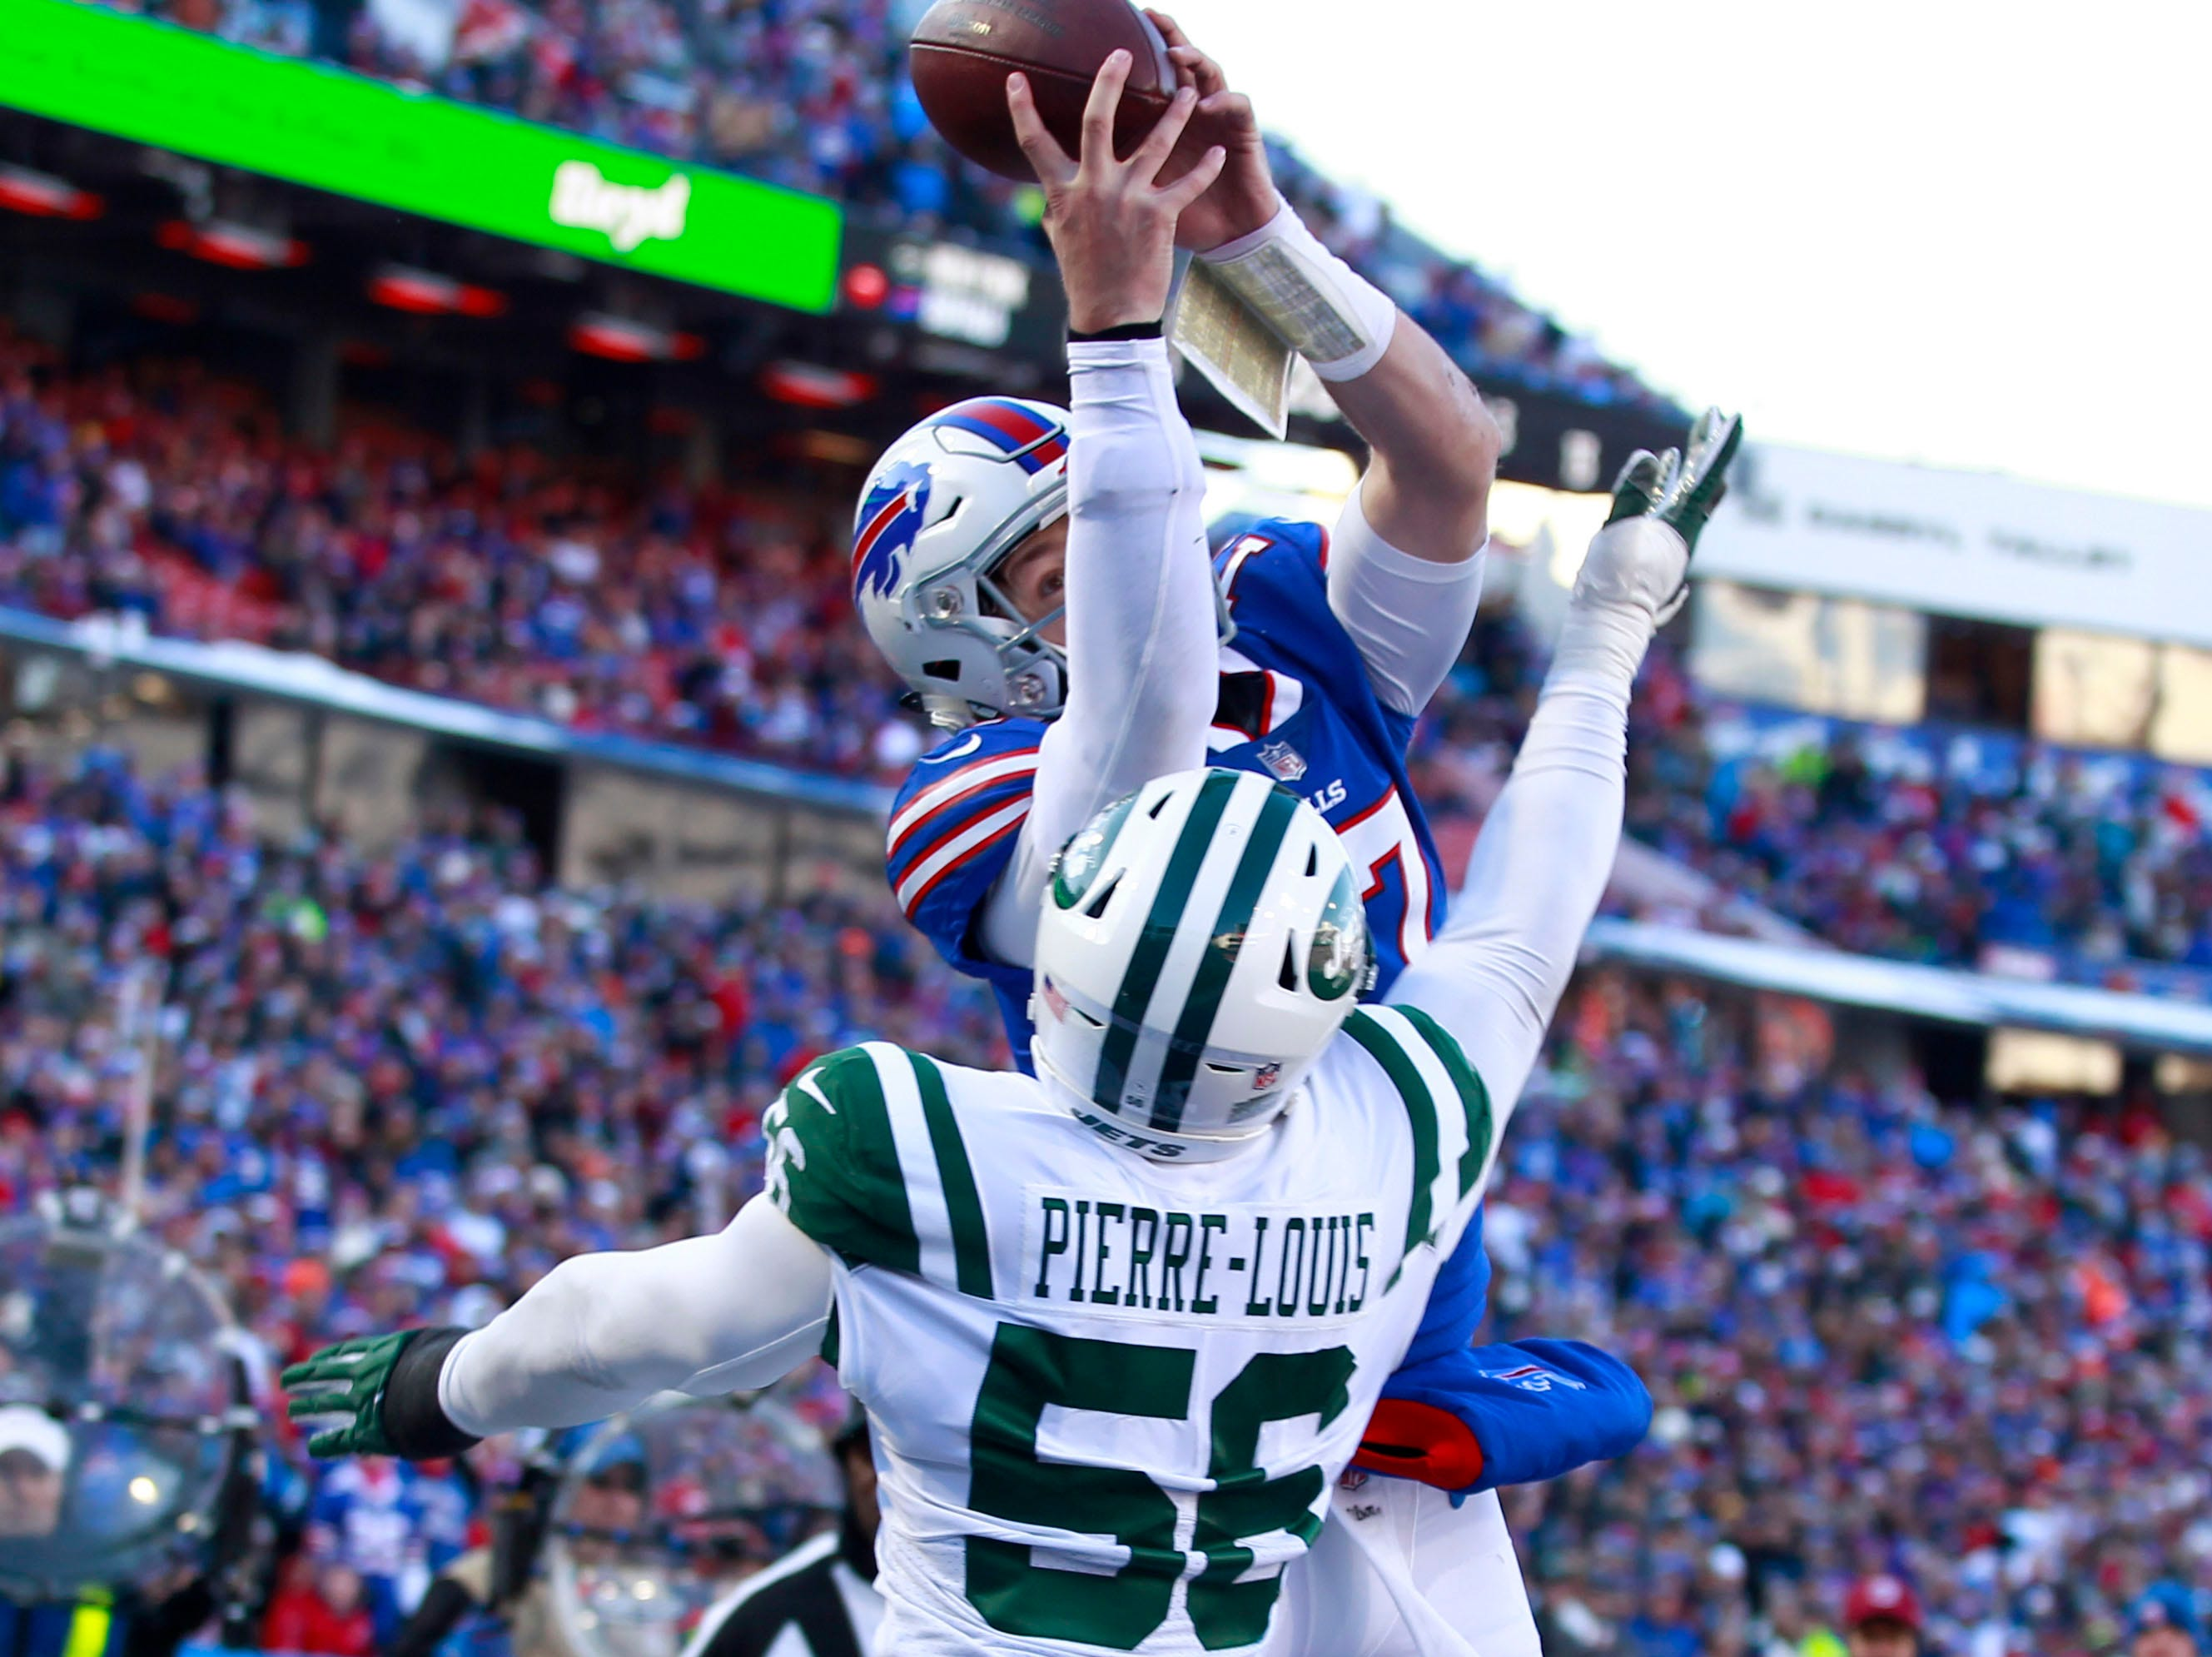 Dec 9, 2018; Orchard Park, NY, USA; Buffalo Bills quarterback Josh Allen (17) tries to catch a pass as New York Jets linebacker Kevin Pierre-Louis (56) tries to block it during the first half at New Era Field. Mandatory Credit: Timothy T. Ludwig-USA TODAY Sports